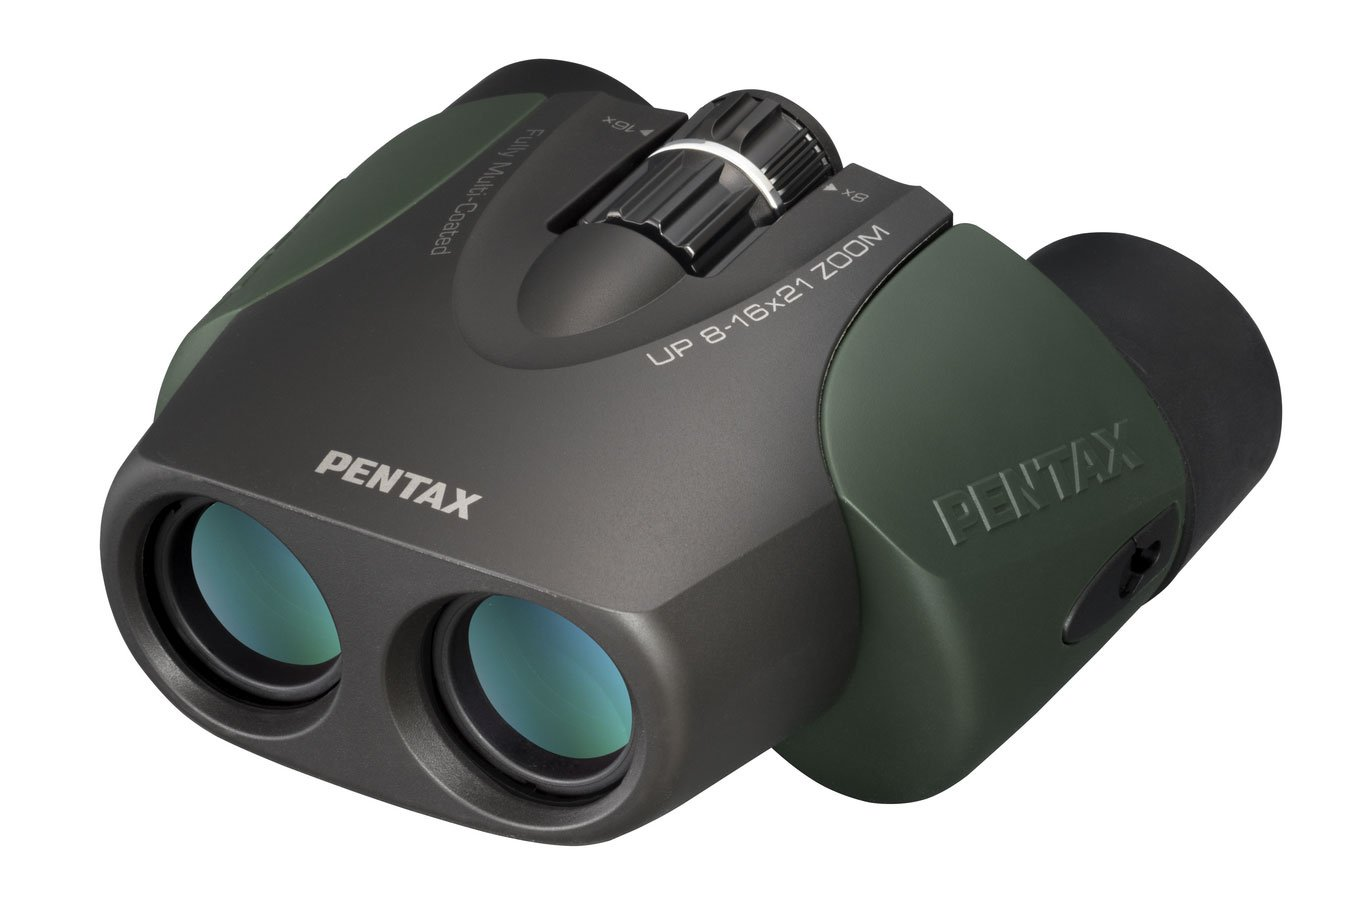 Pentax up 8-16x21 Binoculars, U-Series, Green PENTAX RICOH IMAGING CANADA INC. UP 8-16x21 Green